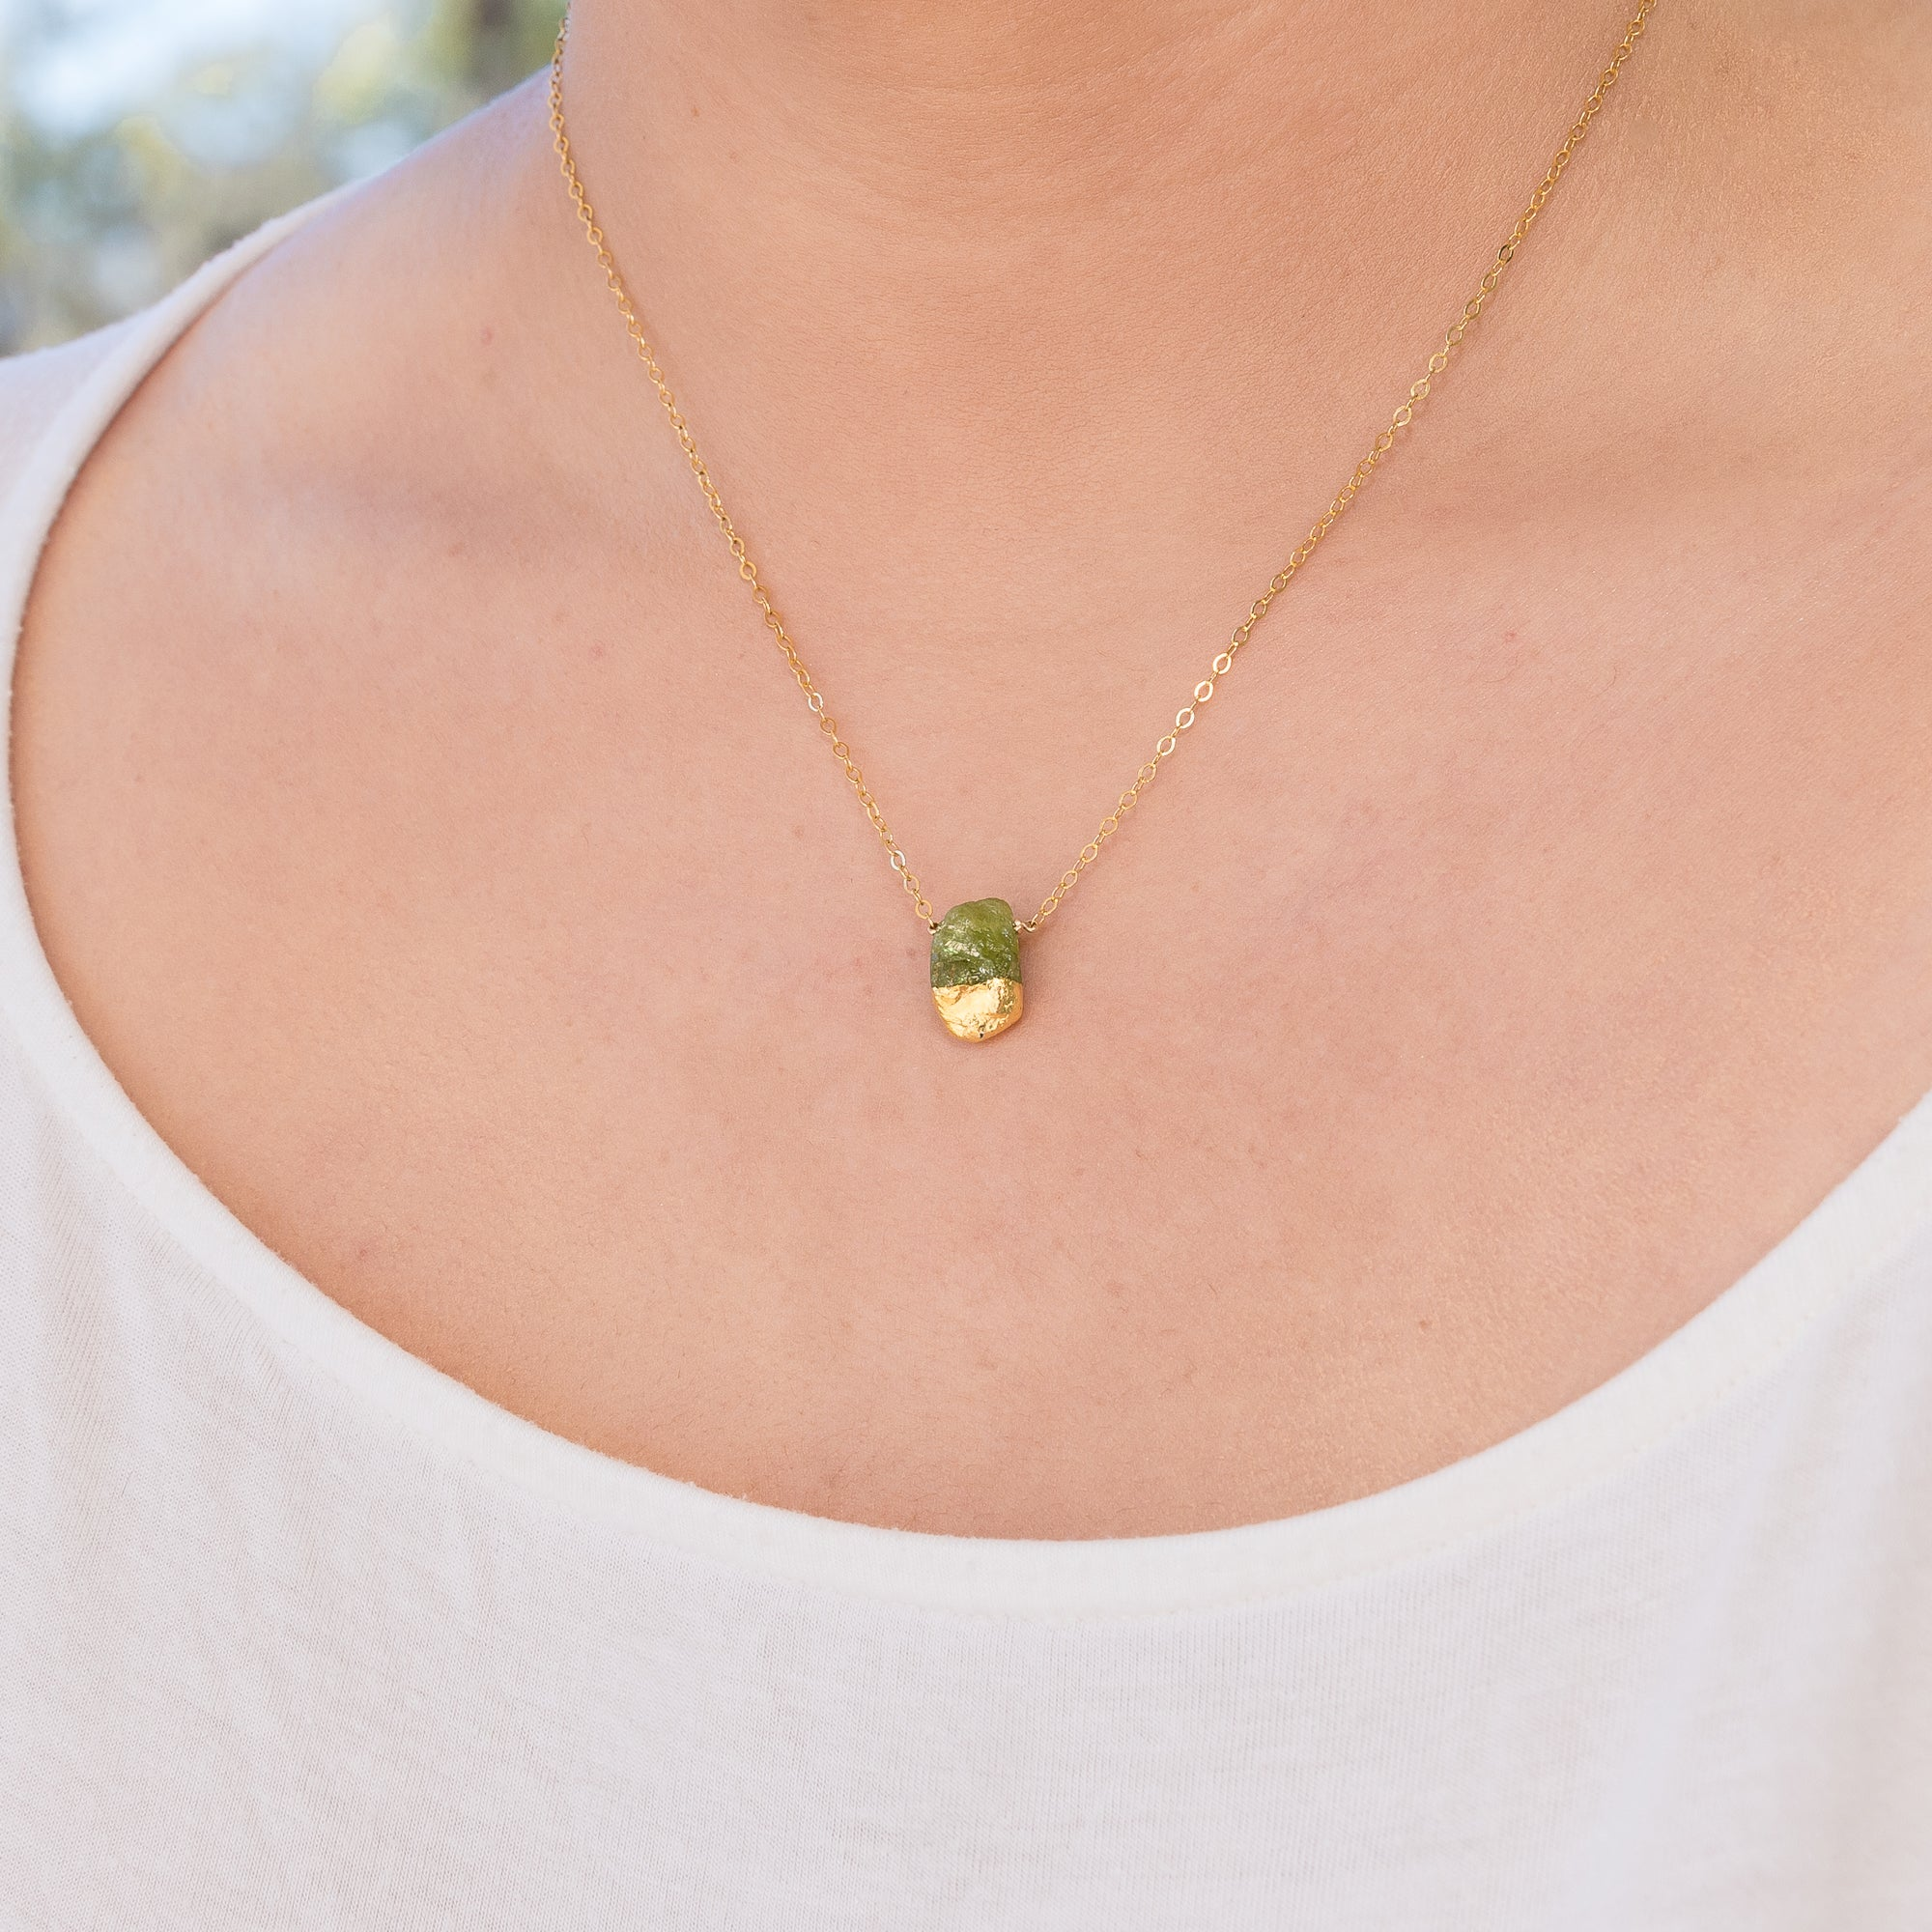 Gold dipped raw Green Peridot necklace